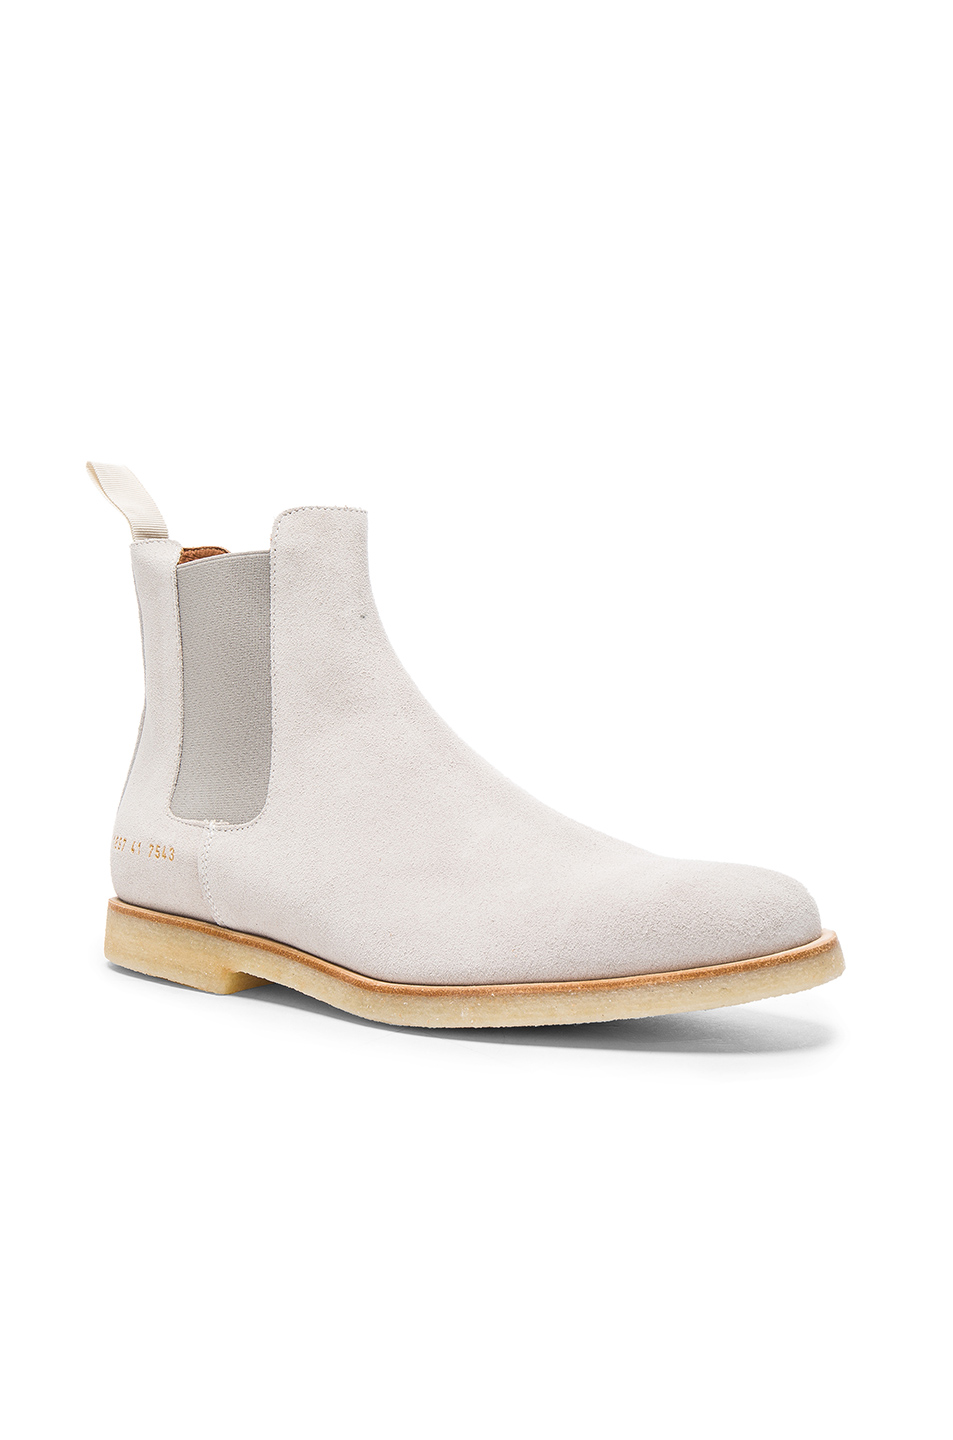 Common Projects Suede Chelsea Boots in Gray